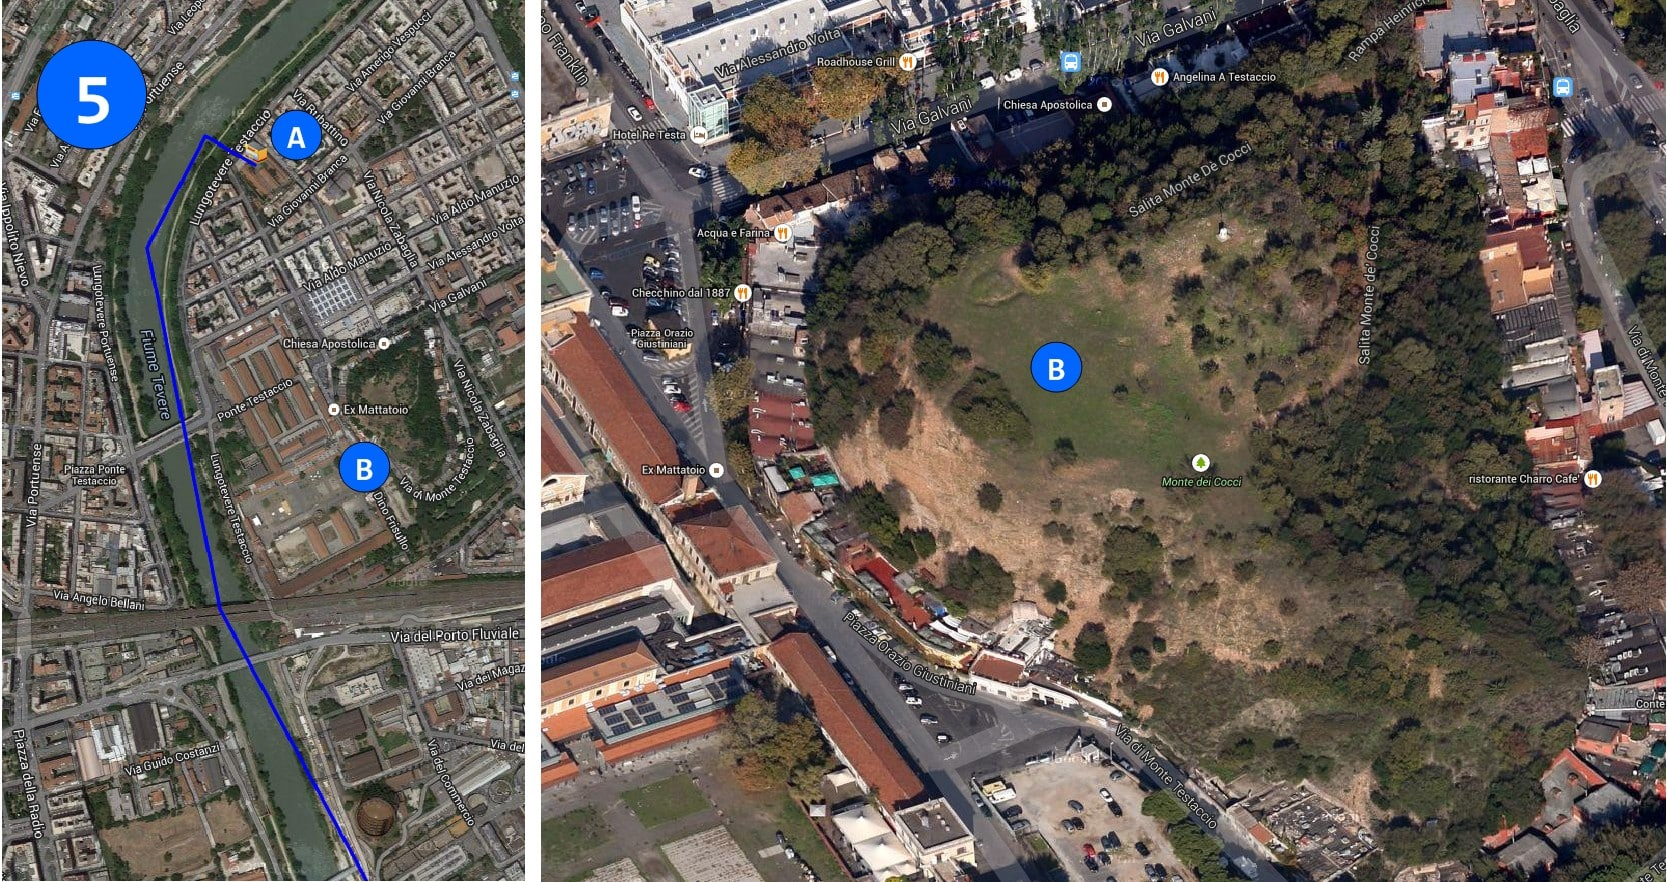 Two side by side satellite images of the roads in Rome today. There are places marked by letters and numbers in blue.